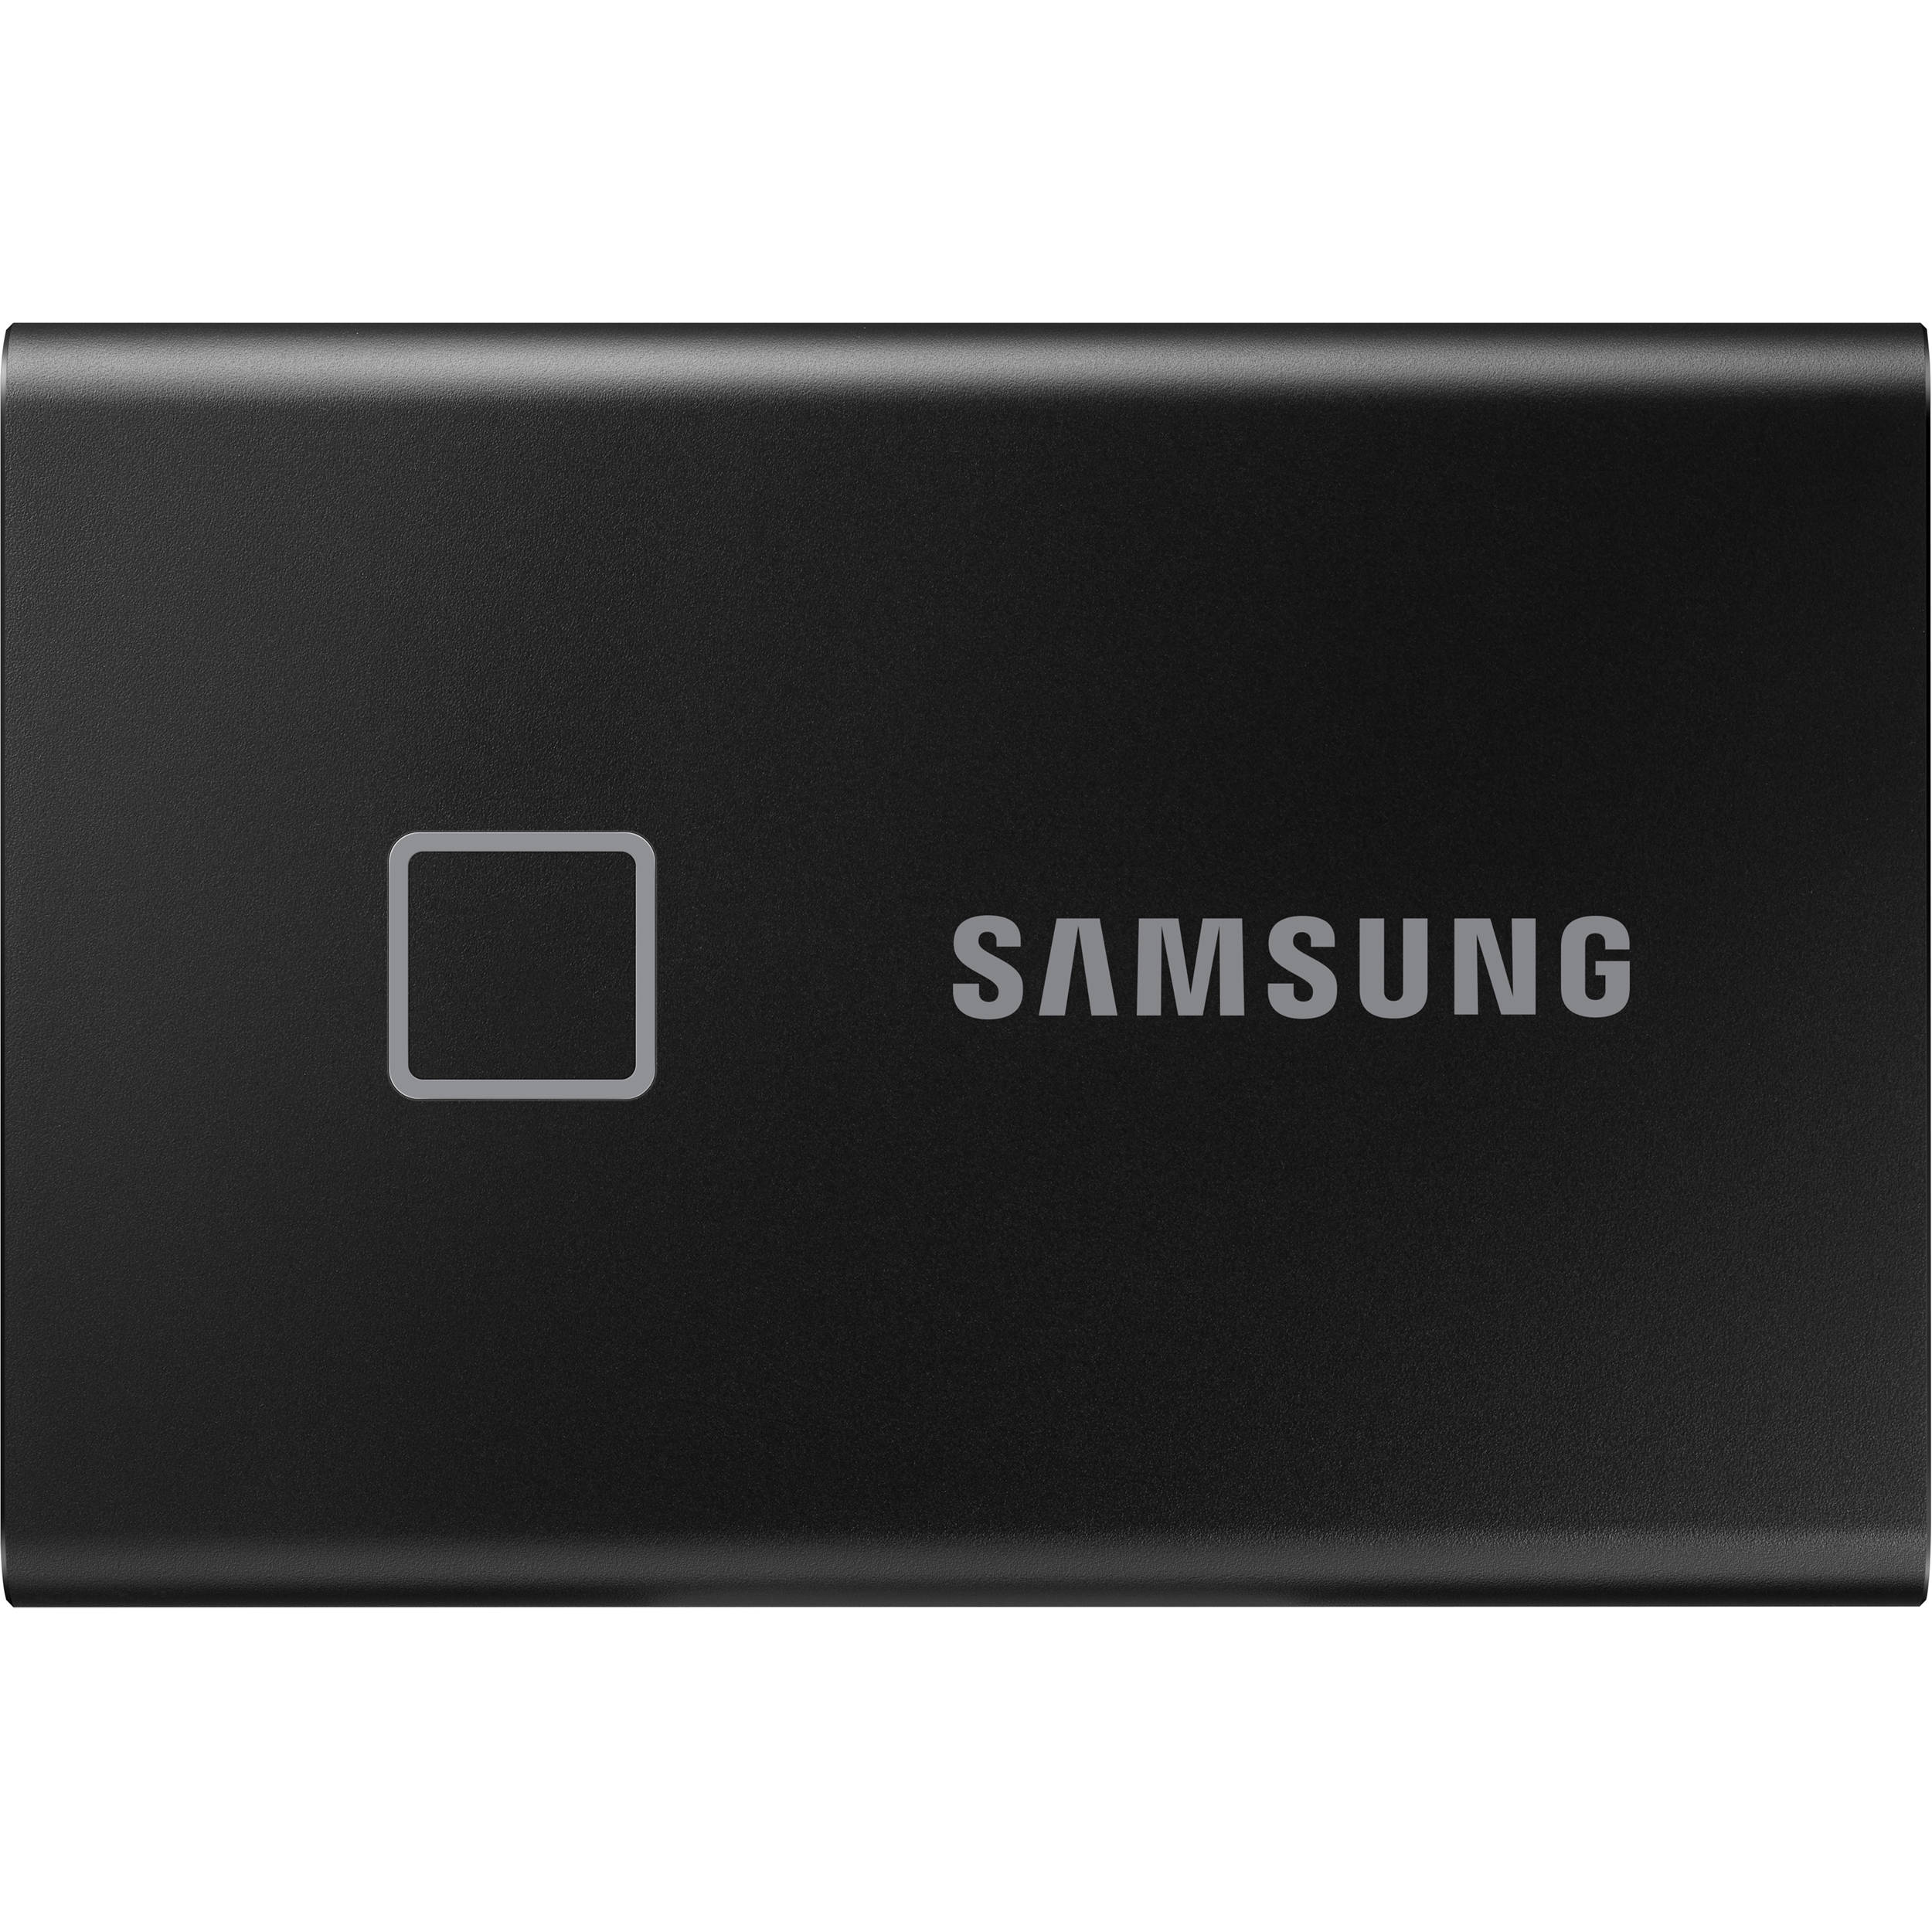 Portable SSD T7 TOUCH USB 3.2 500GB (Black)